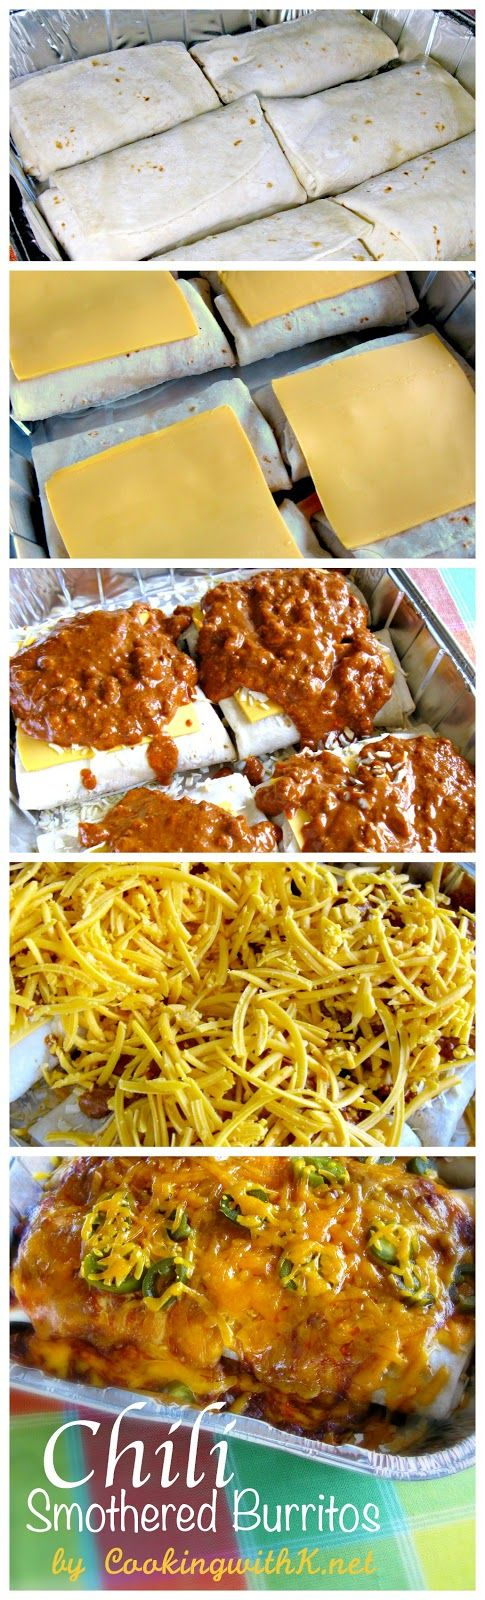 Chili Smothered Burritos is a wonderful recipe that will keep you out of fast food restaurants and your family sitting at the dinner table.   Don't forget to buy your frozen burritos and have them available when you are ready to make this recipe.